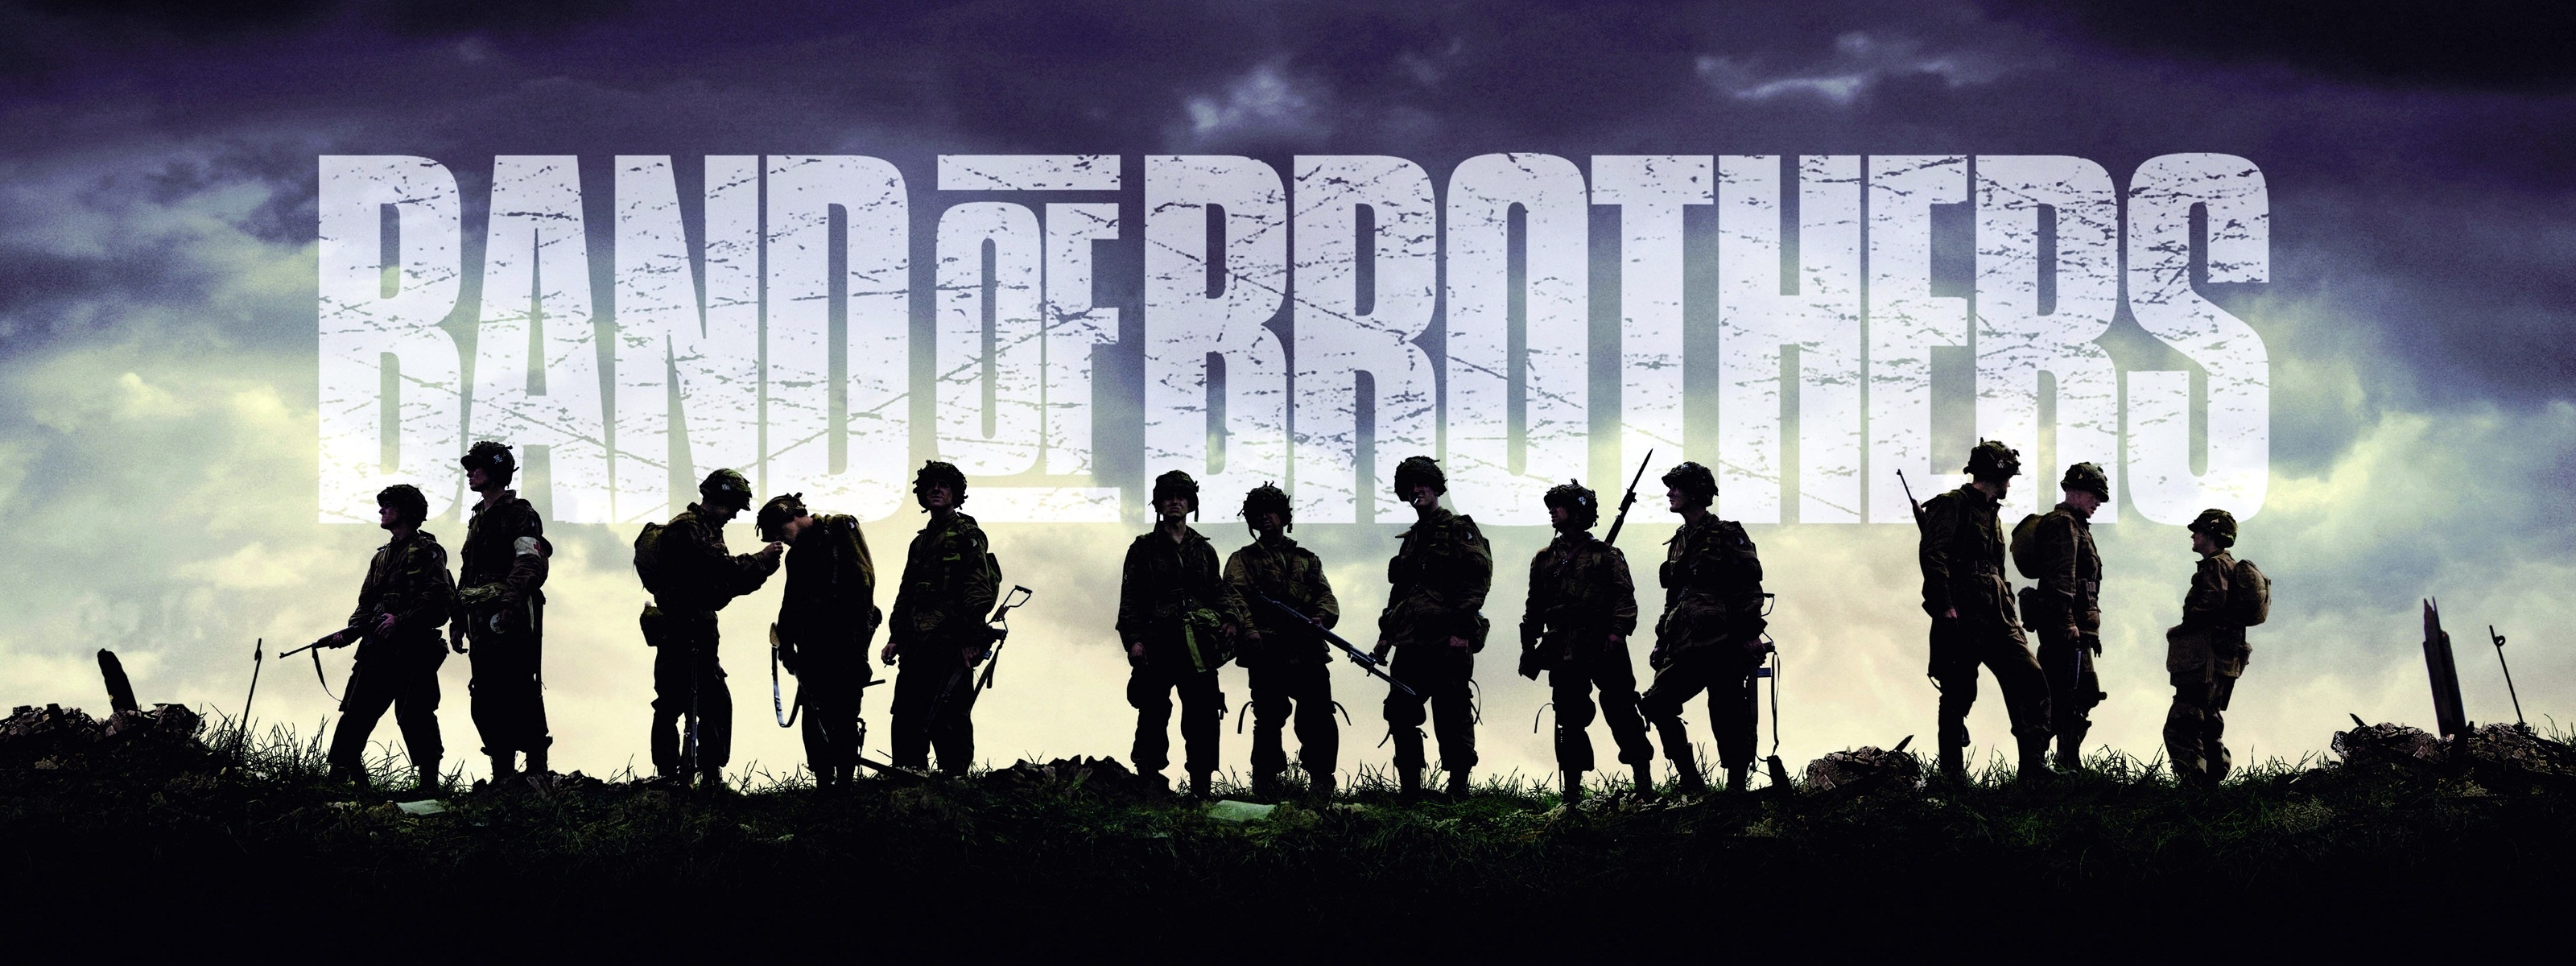 Any Band of Brothers fans? | YouthDebates - Youth Empowerment & Debate ...